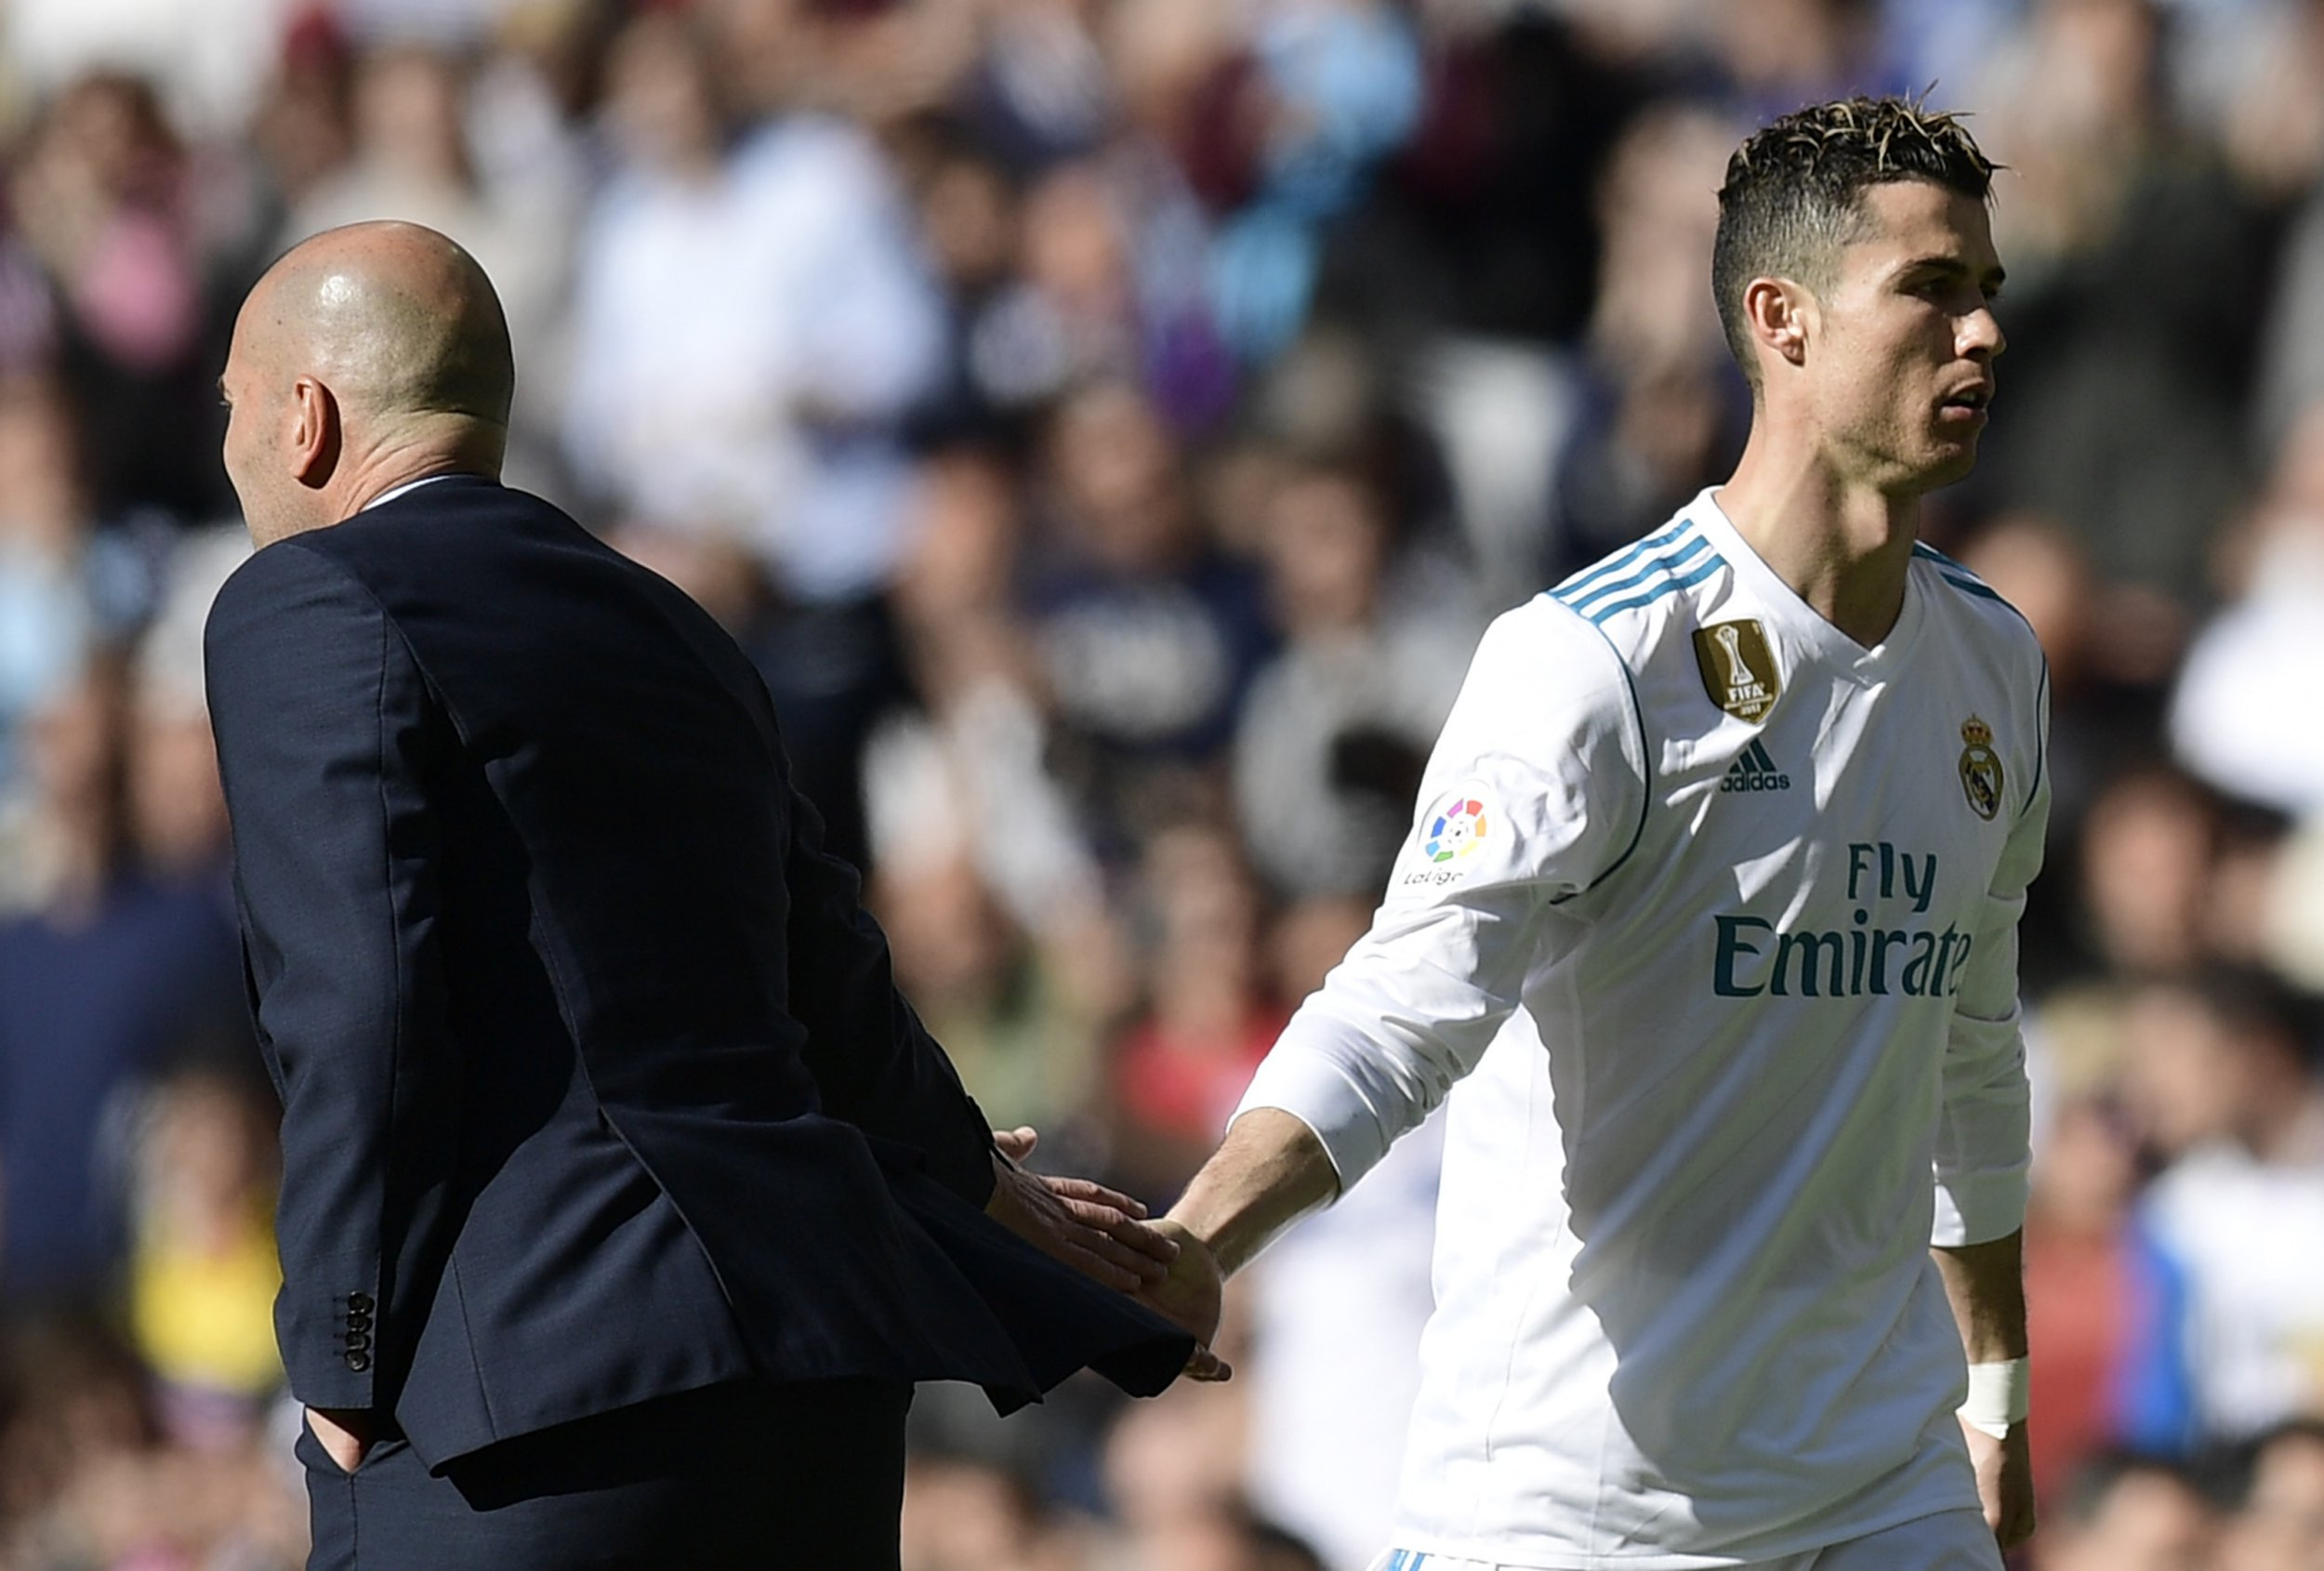 Real Madrid's French coach Zinedine Zidane (L) cheers Real Madrid's Portuguese forward Cristiano Ronaldo as he leaves the field during the Spanish league football match between Real Madrid CF and Club Atletico de Madrid at the Santiago Bernabeu stadium in Madrid on April 8, 2018. / AFP PHOTO / JAVIER SORIANOJAVIER SORIANO/AFP/Getty Images